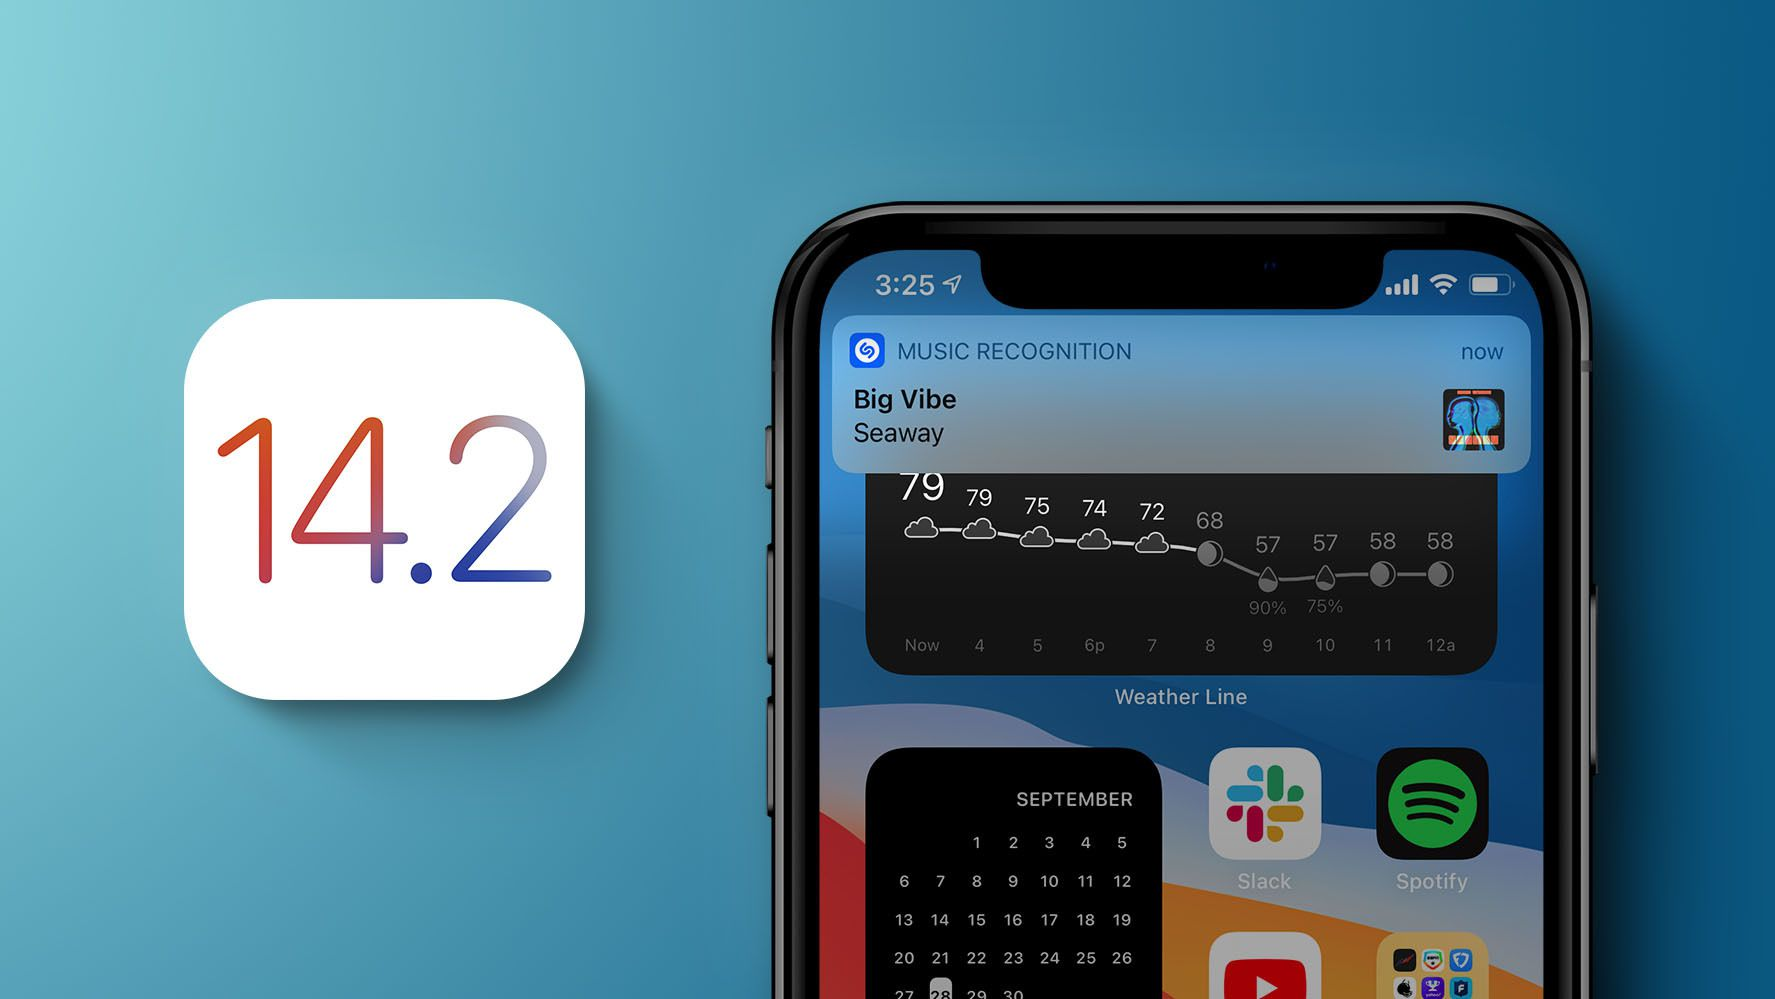 Hands-On With iOS 14.2's New Shazam Music Recognition Toggle in Control Center